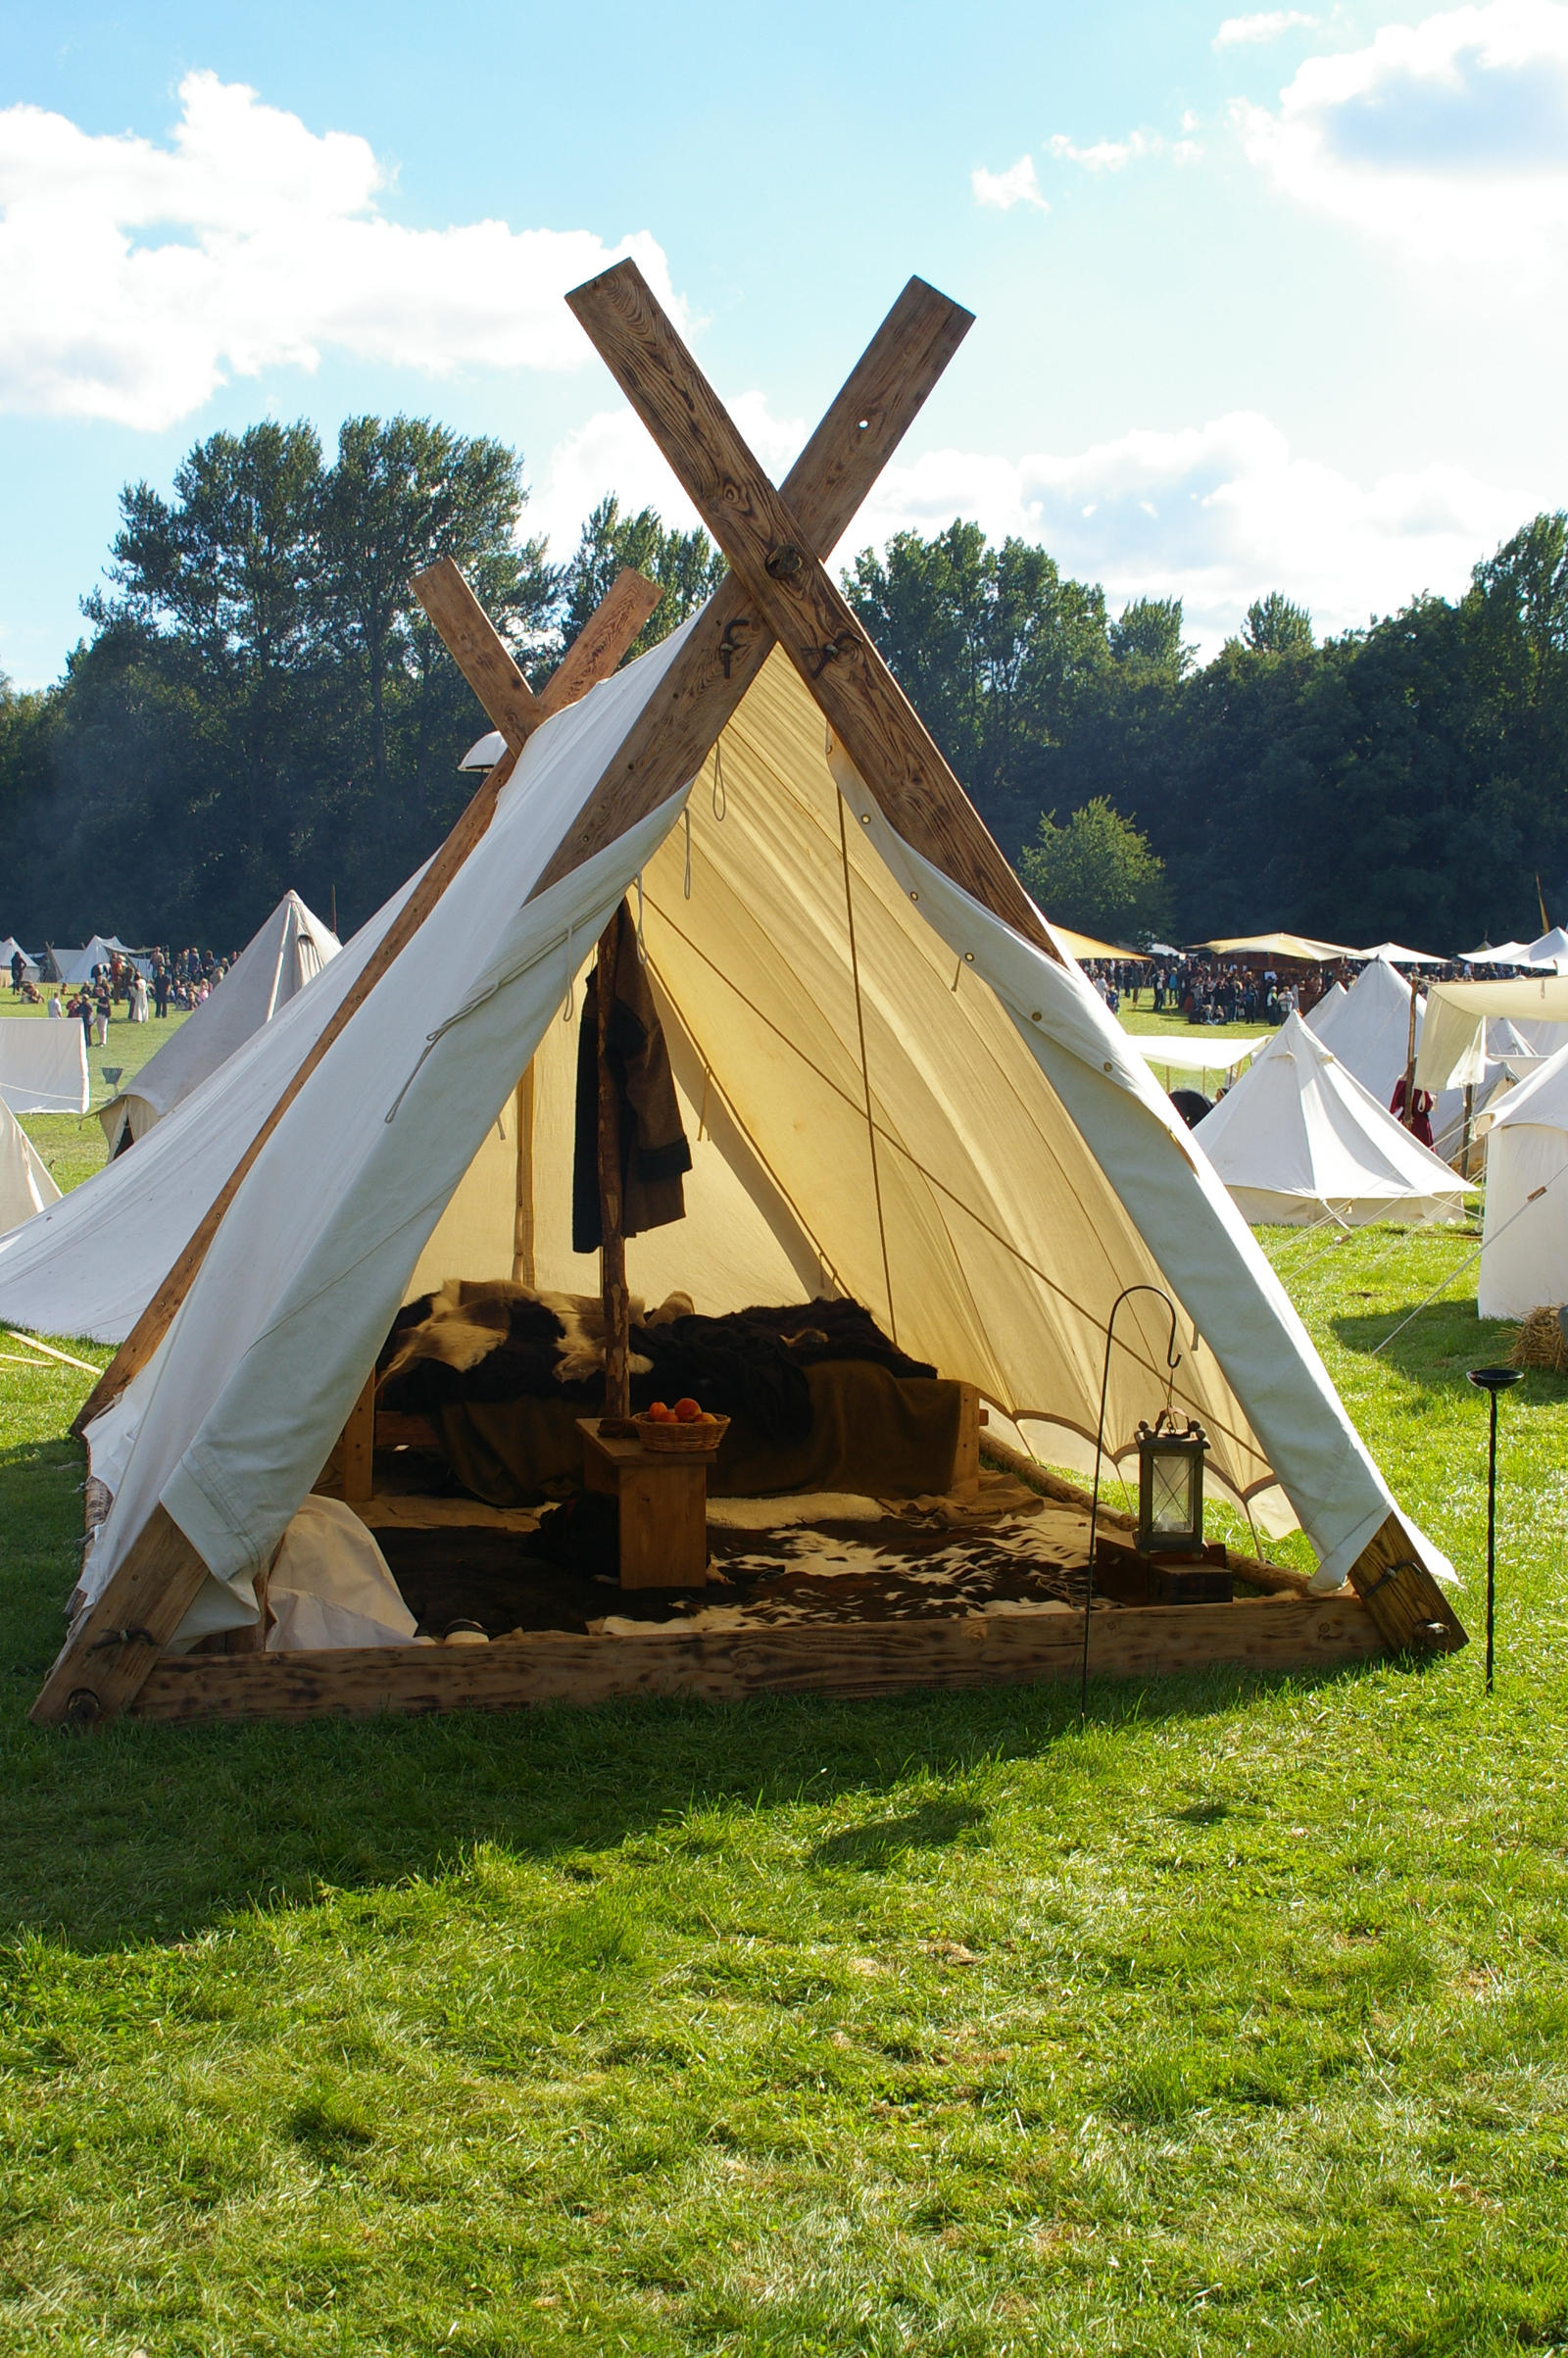 Viking Tent by Benthor & Viking tent by Nimpsu on DeviantArt